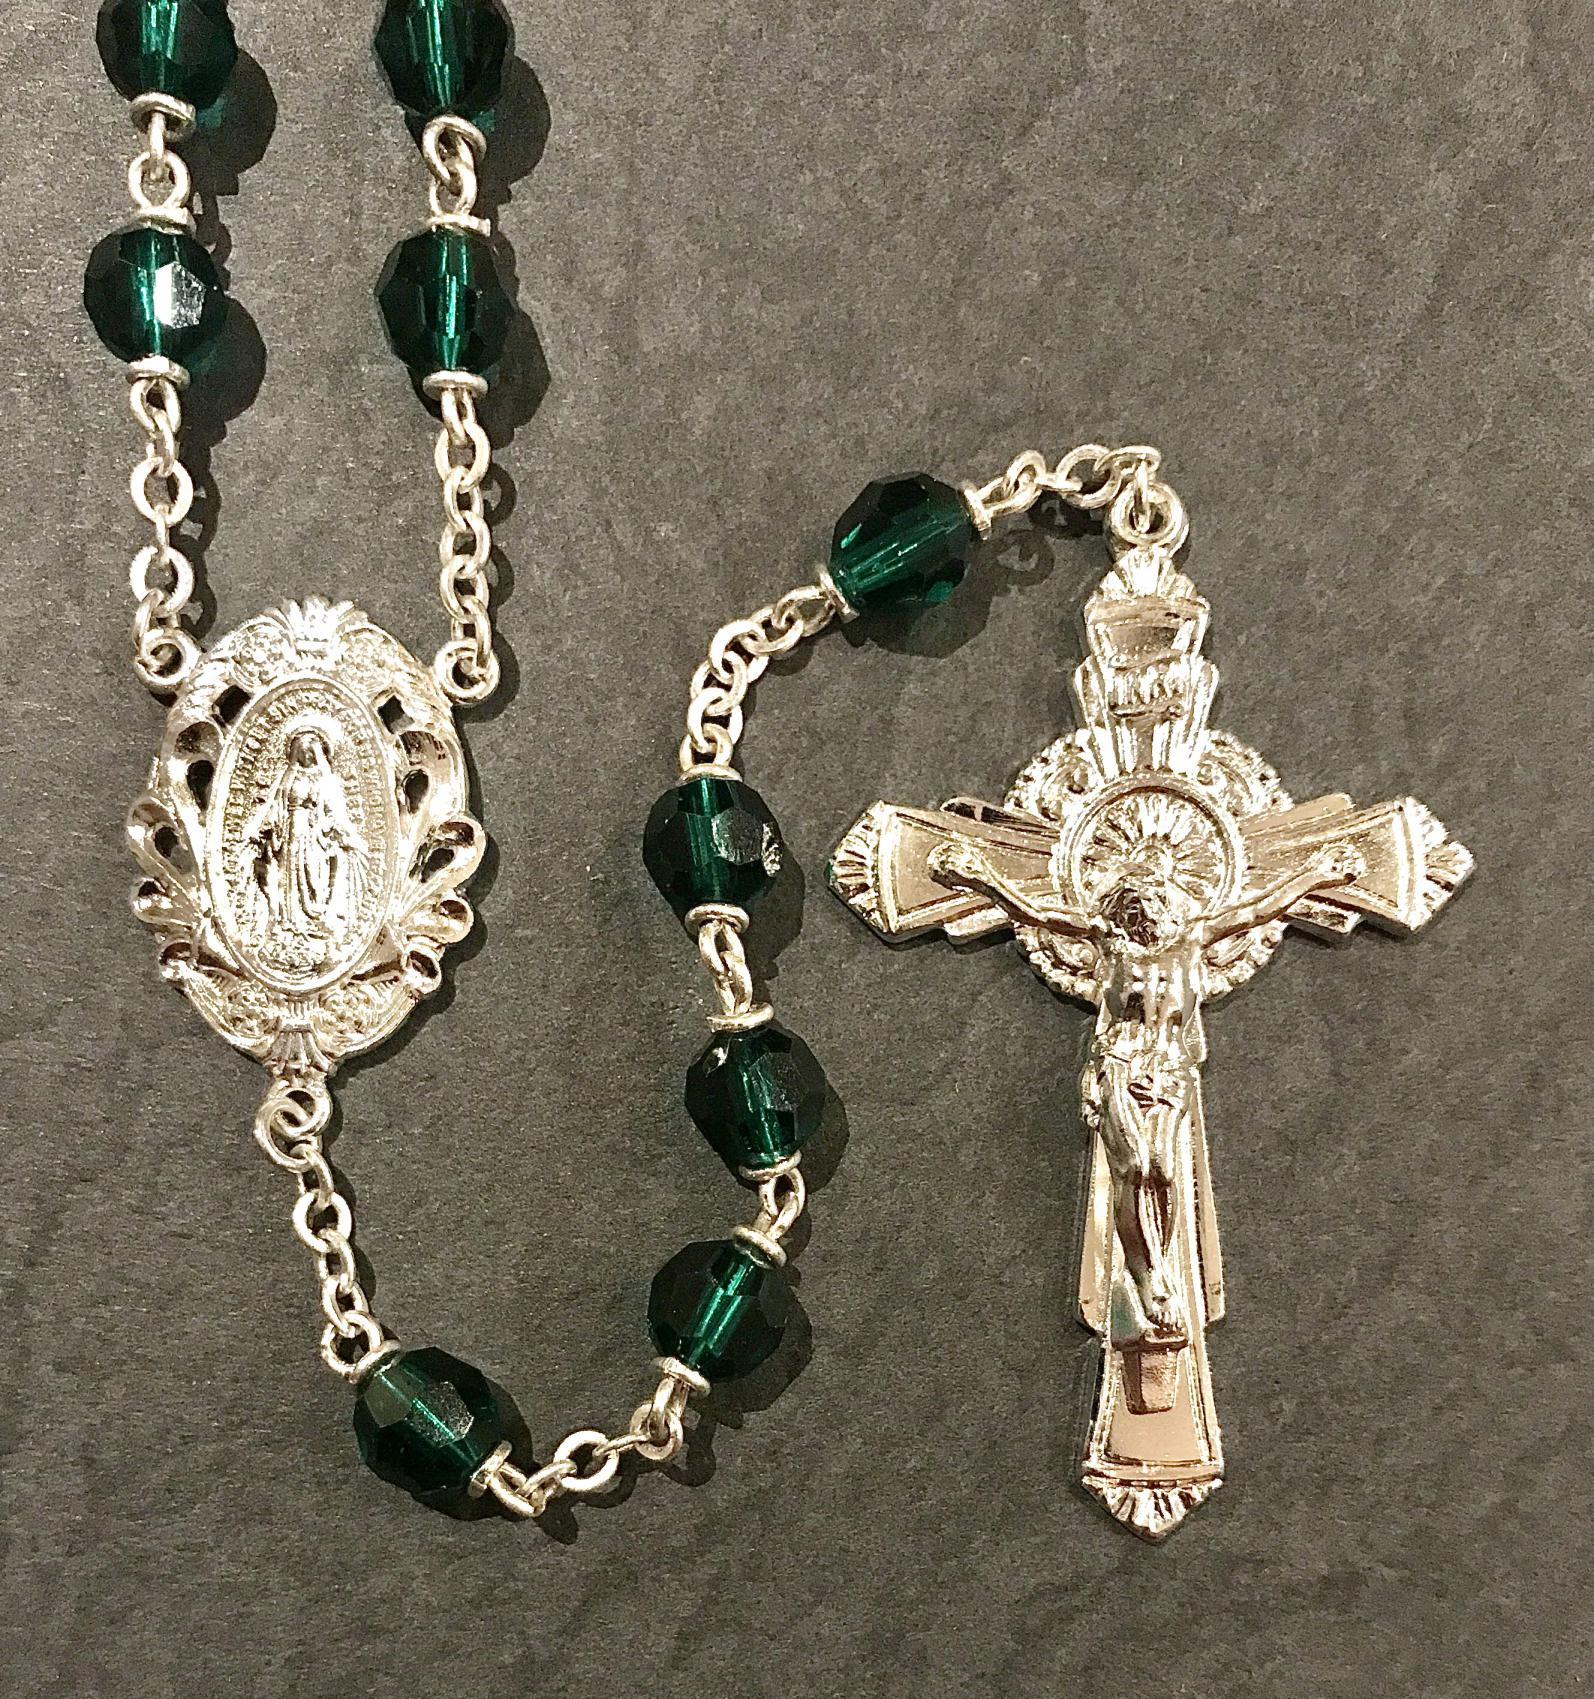 6mm EMERALD TIN CUT LOC-LINK ROSARY WITH STERLING SILVER PLATED CRUCIFIX, CENTER, WIRE, CHAIN GIFT BOXED